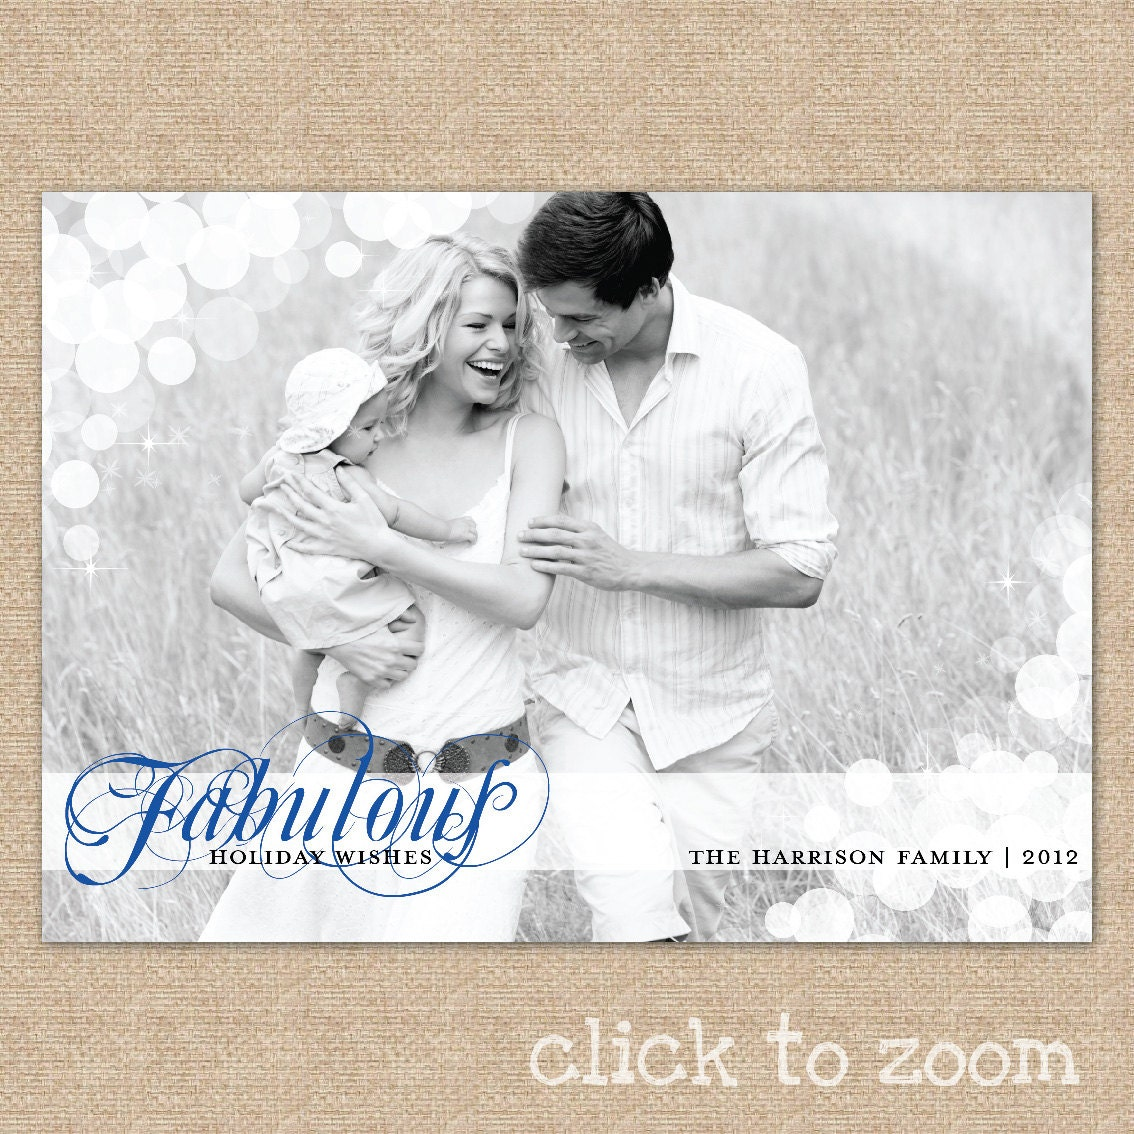 Christmas card Holiday photo card - Fabulous Holiday Wishes - A fully customized and editable photo holiday card